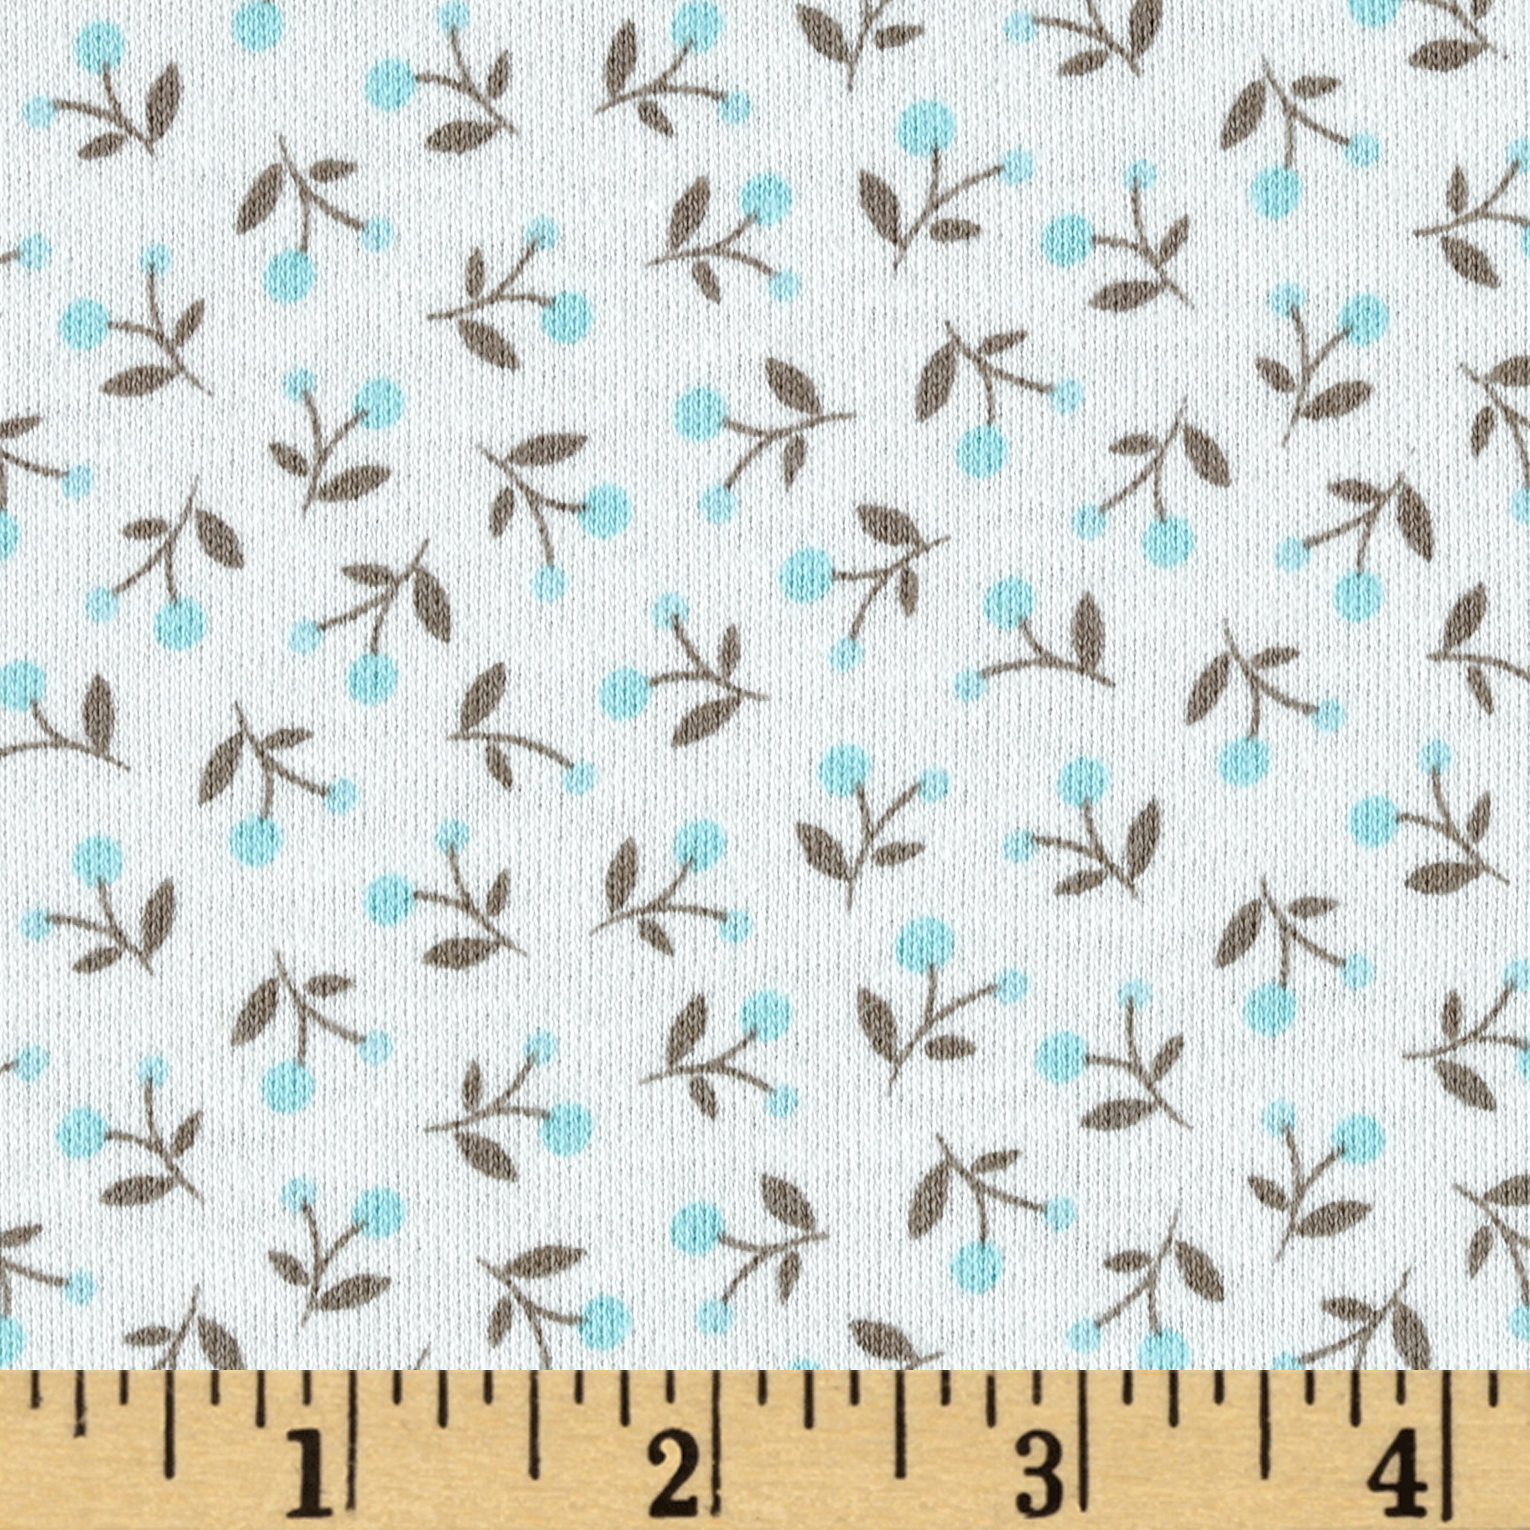 Cloud 9 Organics Ditsy Interlock Knit Turquoise Fabric by Cloud 9 in USA